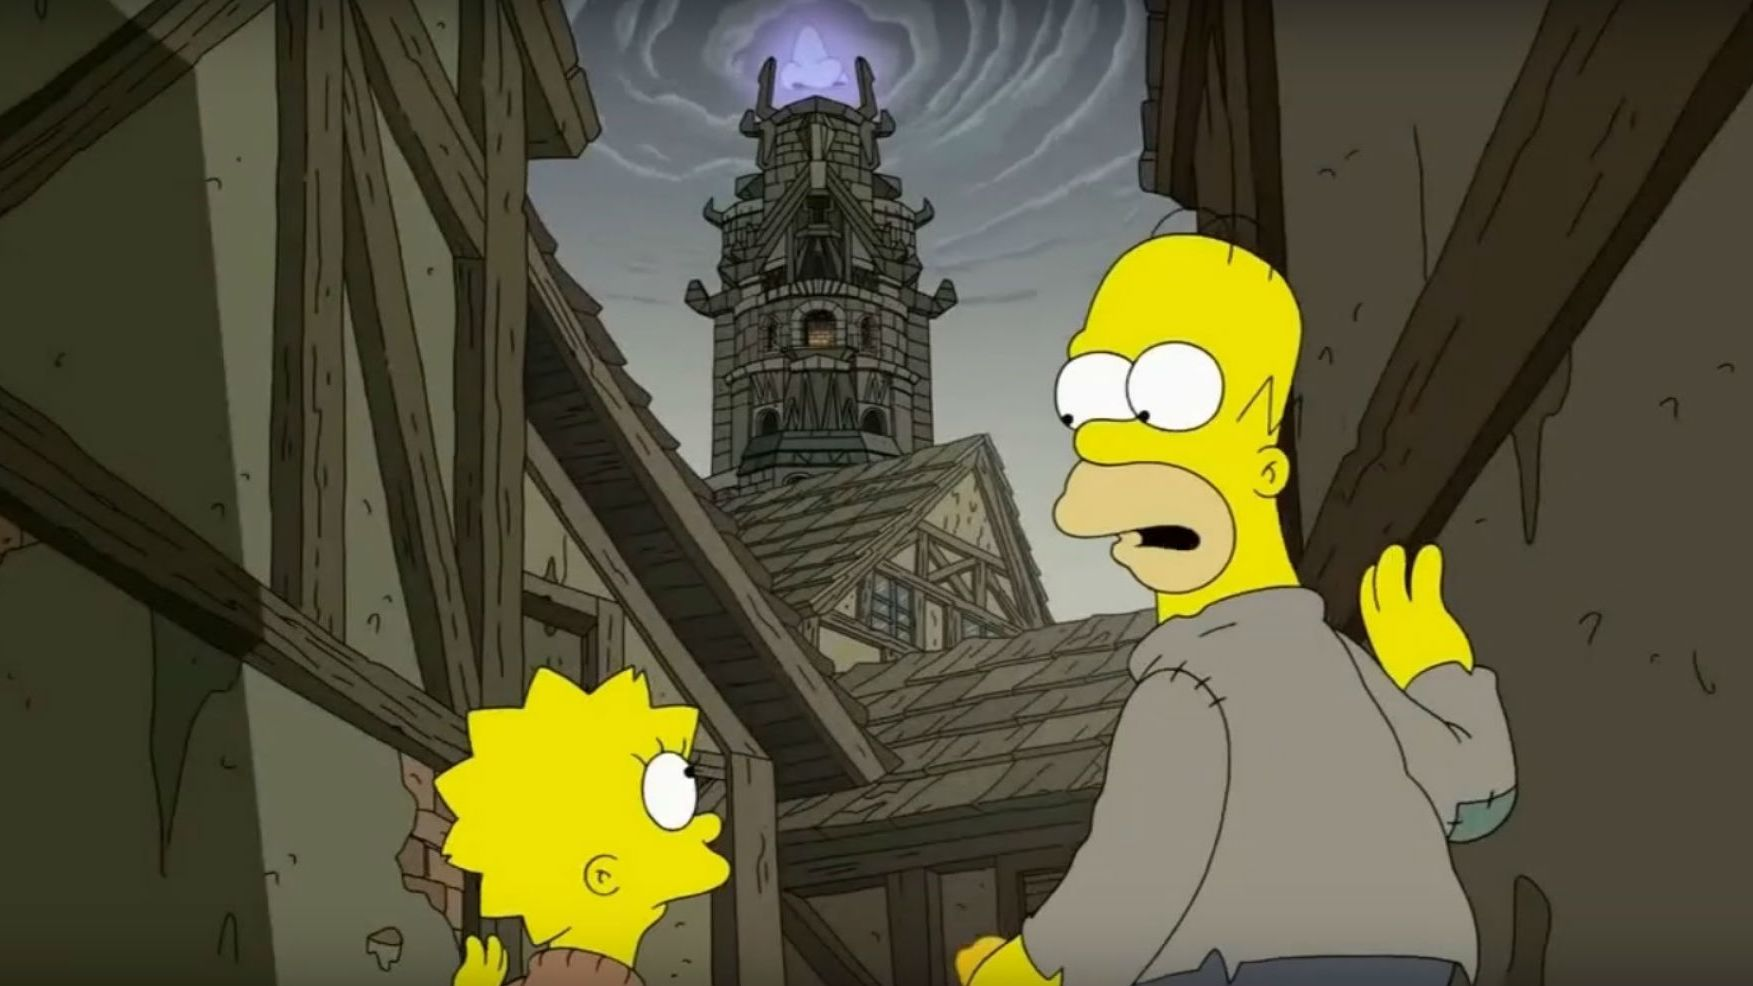 Simpsons Christmas Boogie.The Simpsons Predicted That Penultimate Game Of Thrones